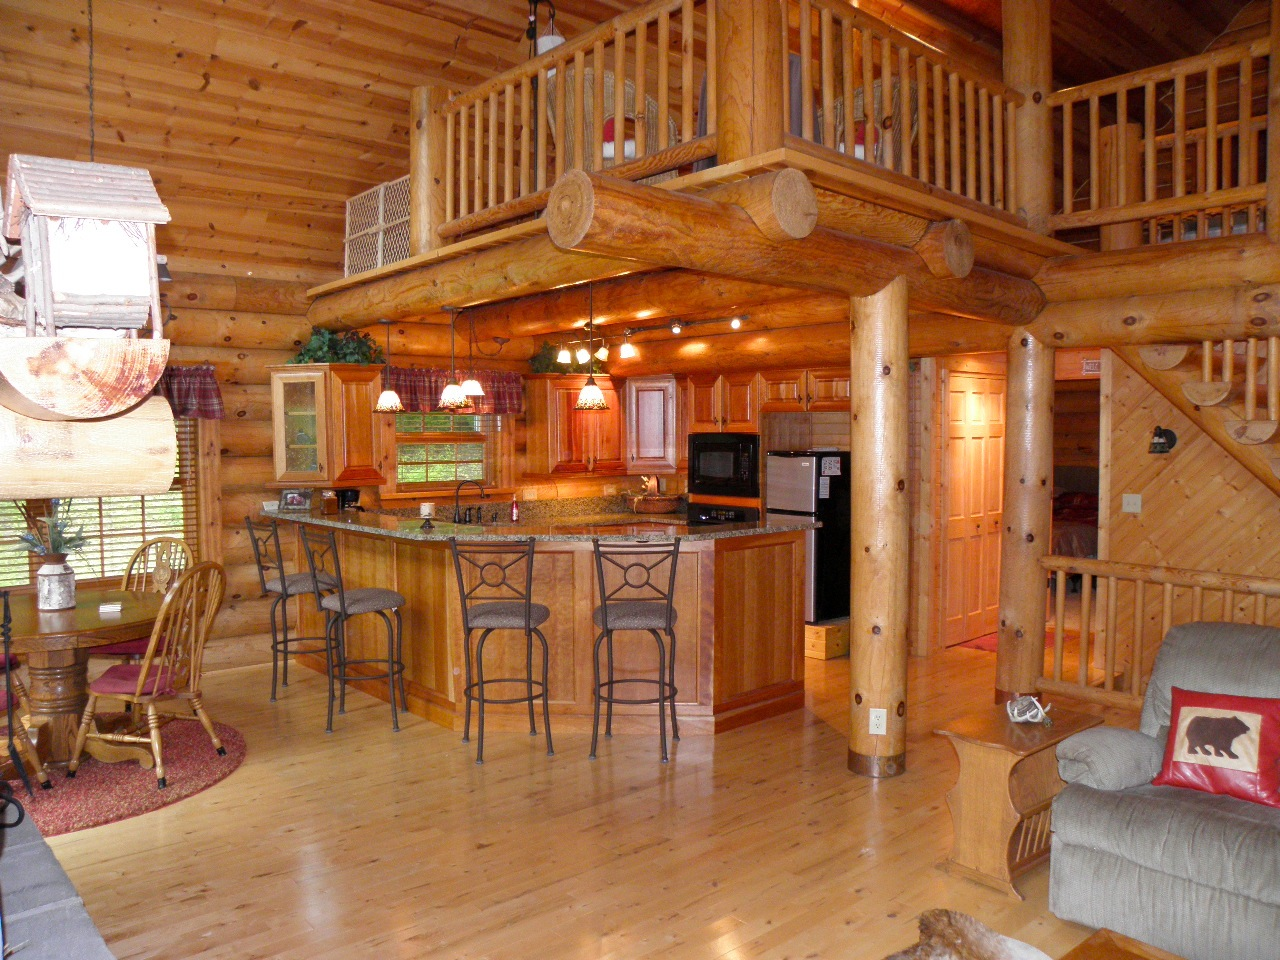 Paint creek lodge 5 bedroom log cabin with hot tub jacuzzi for Log cabin with loft